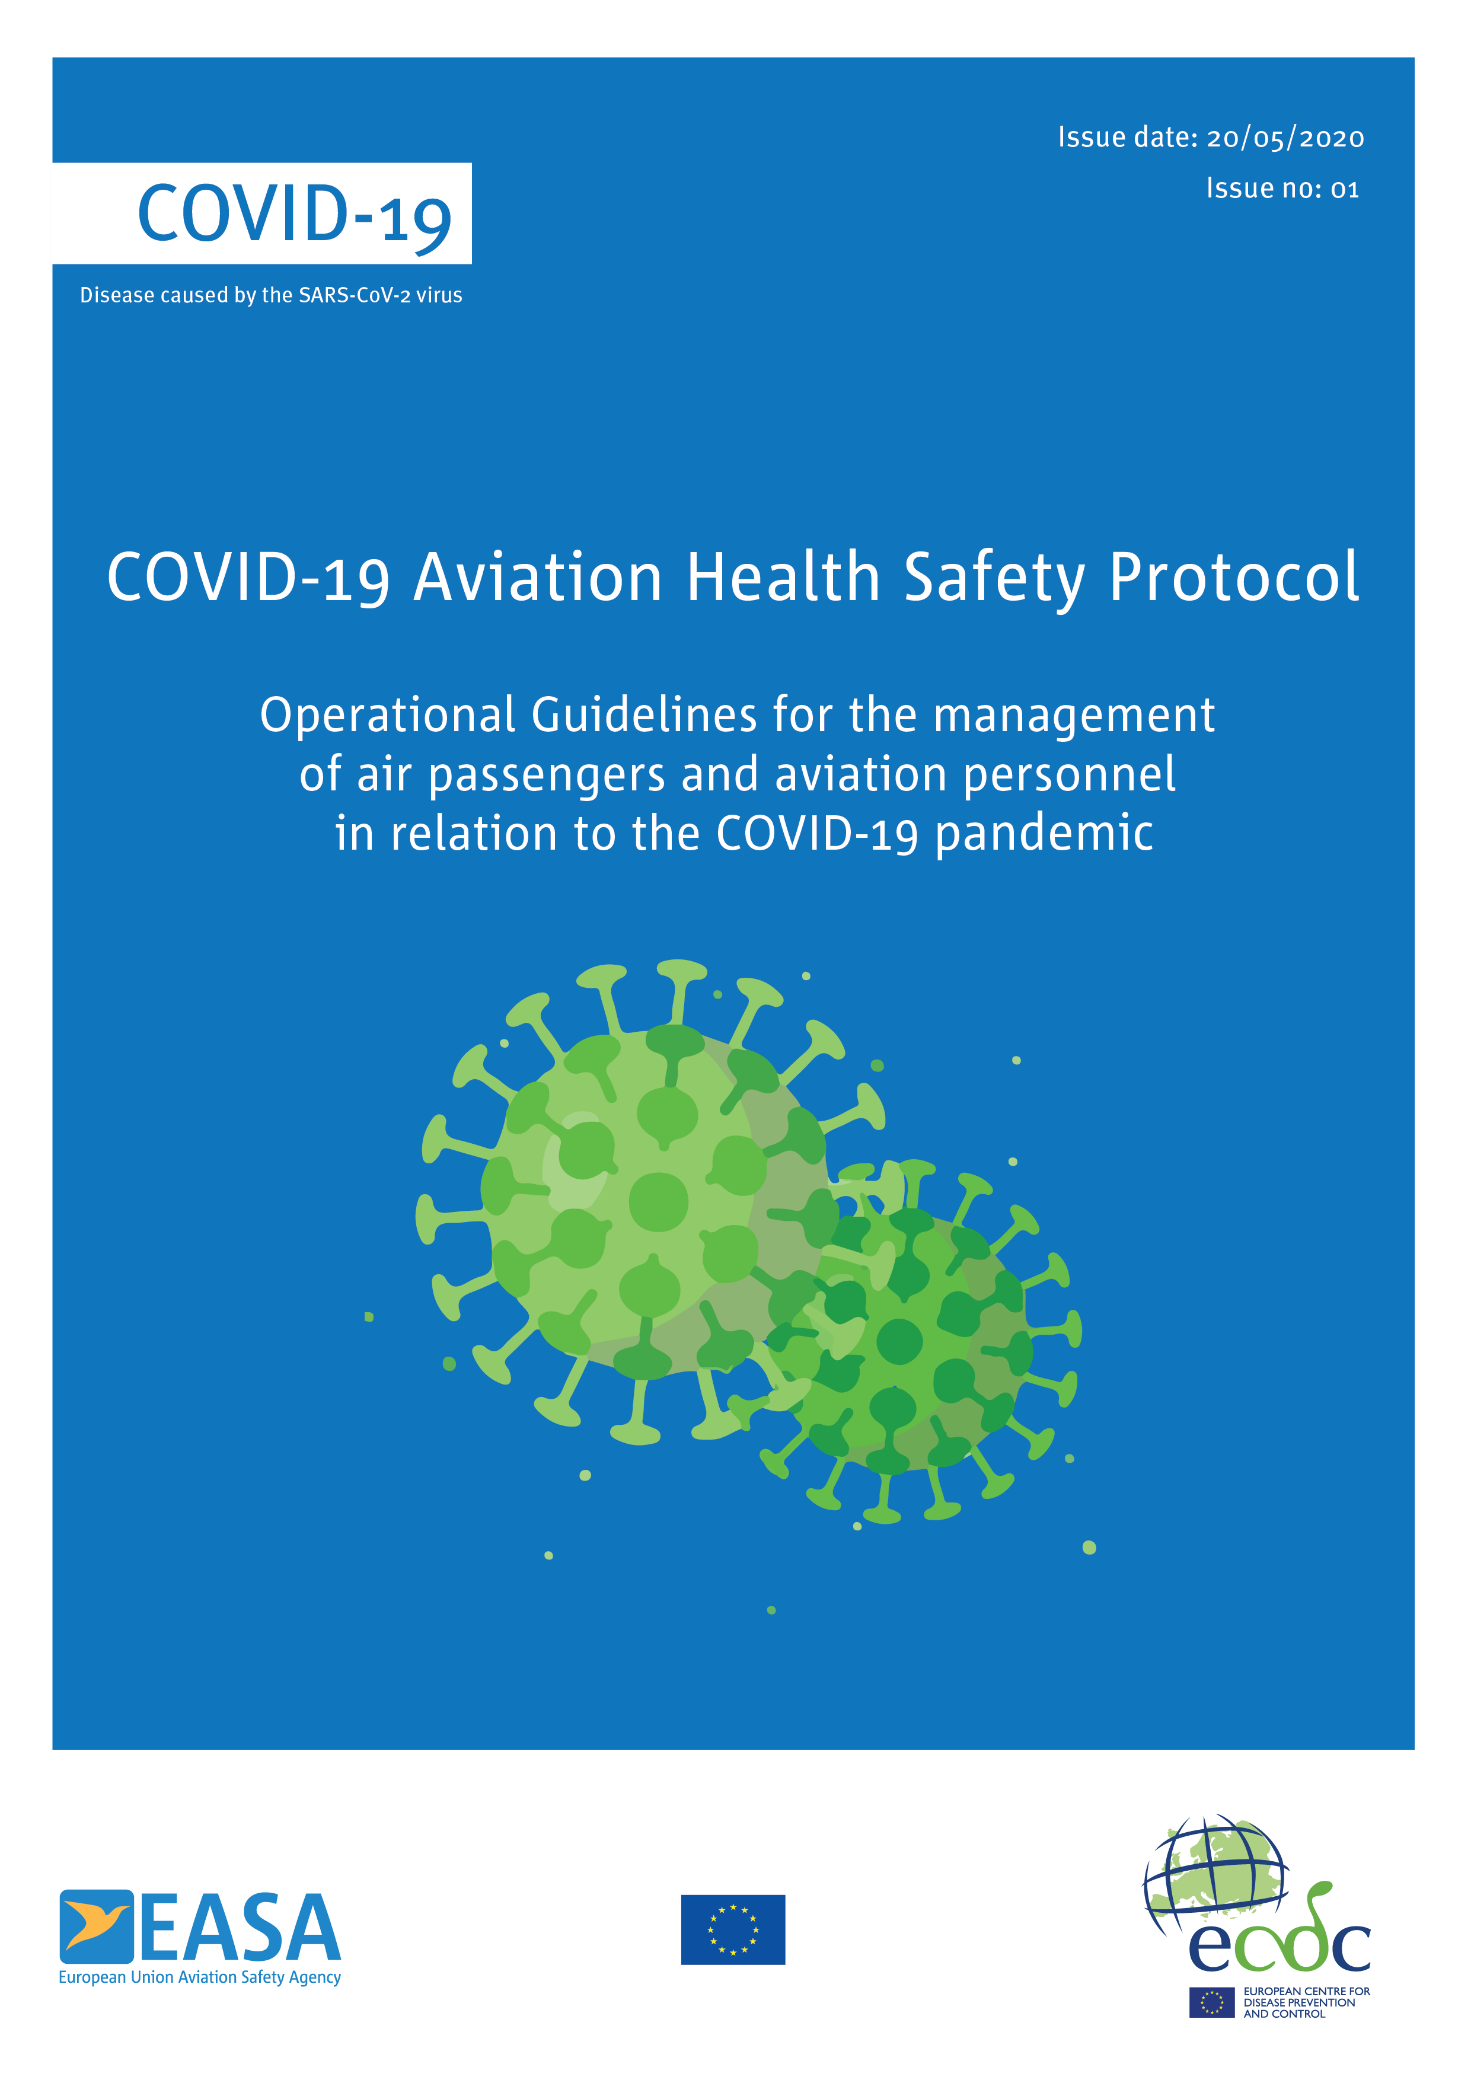 COVID-19 Aviation Health Safety Protocol | EASA